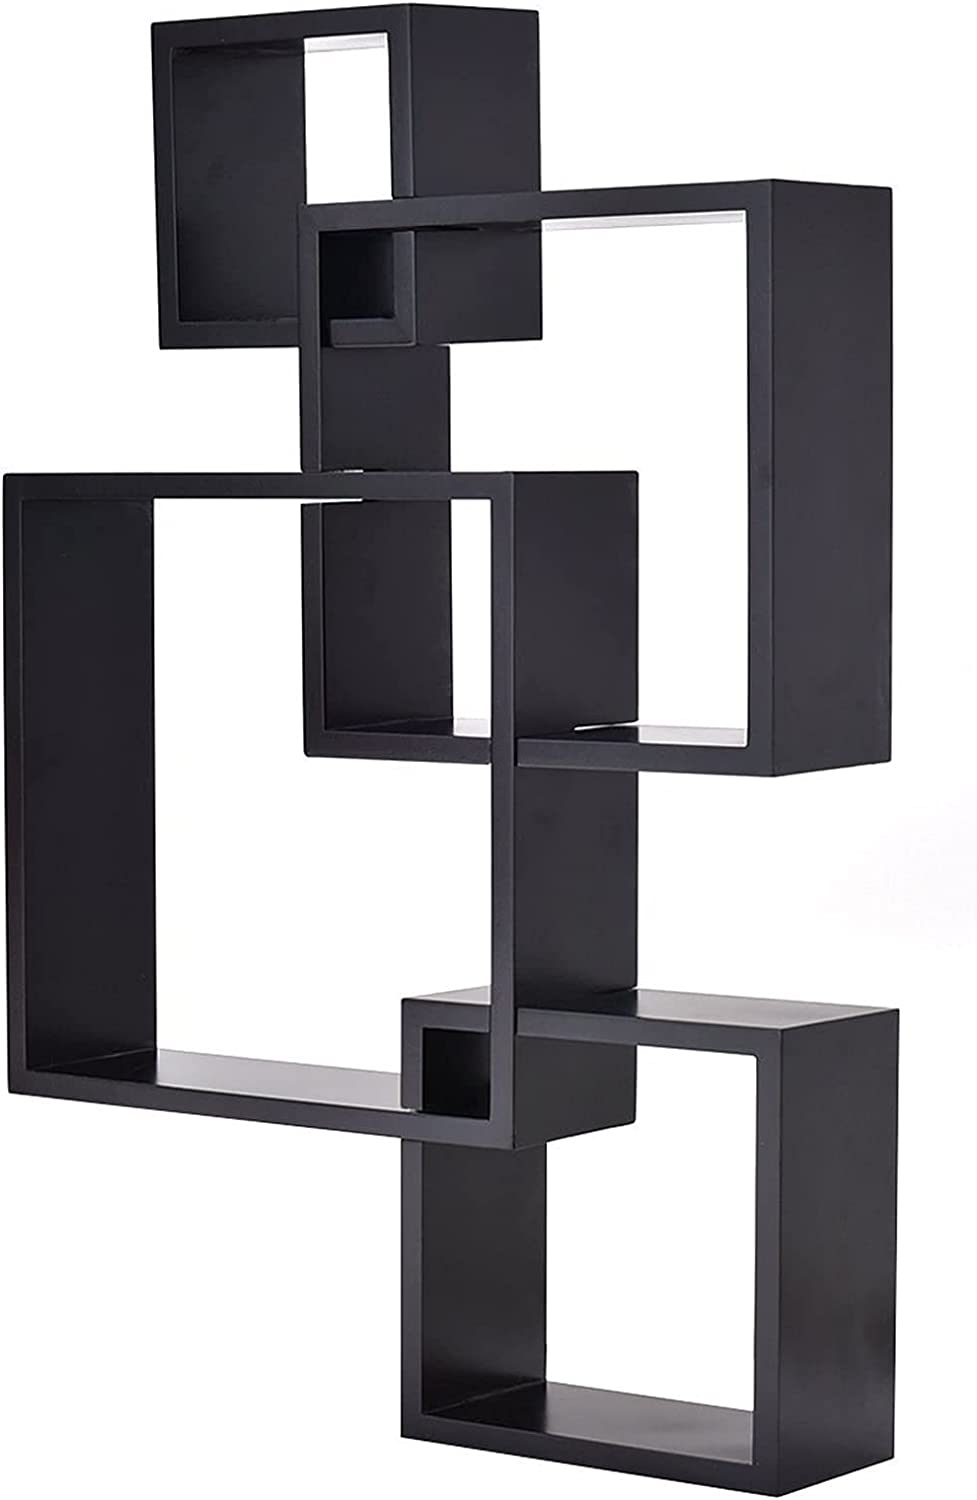 HYZX Black Intersecting Squares Floating Popularity Shelf Mounted Max 60% OFF Furn Wall